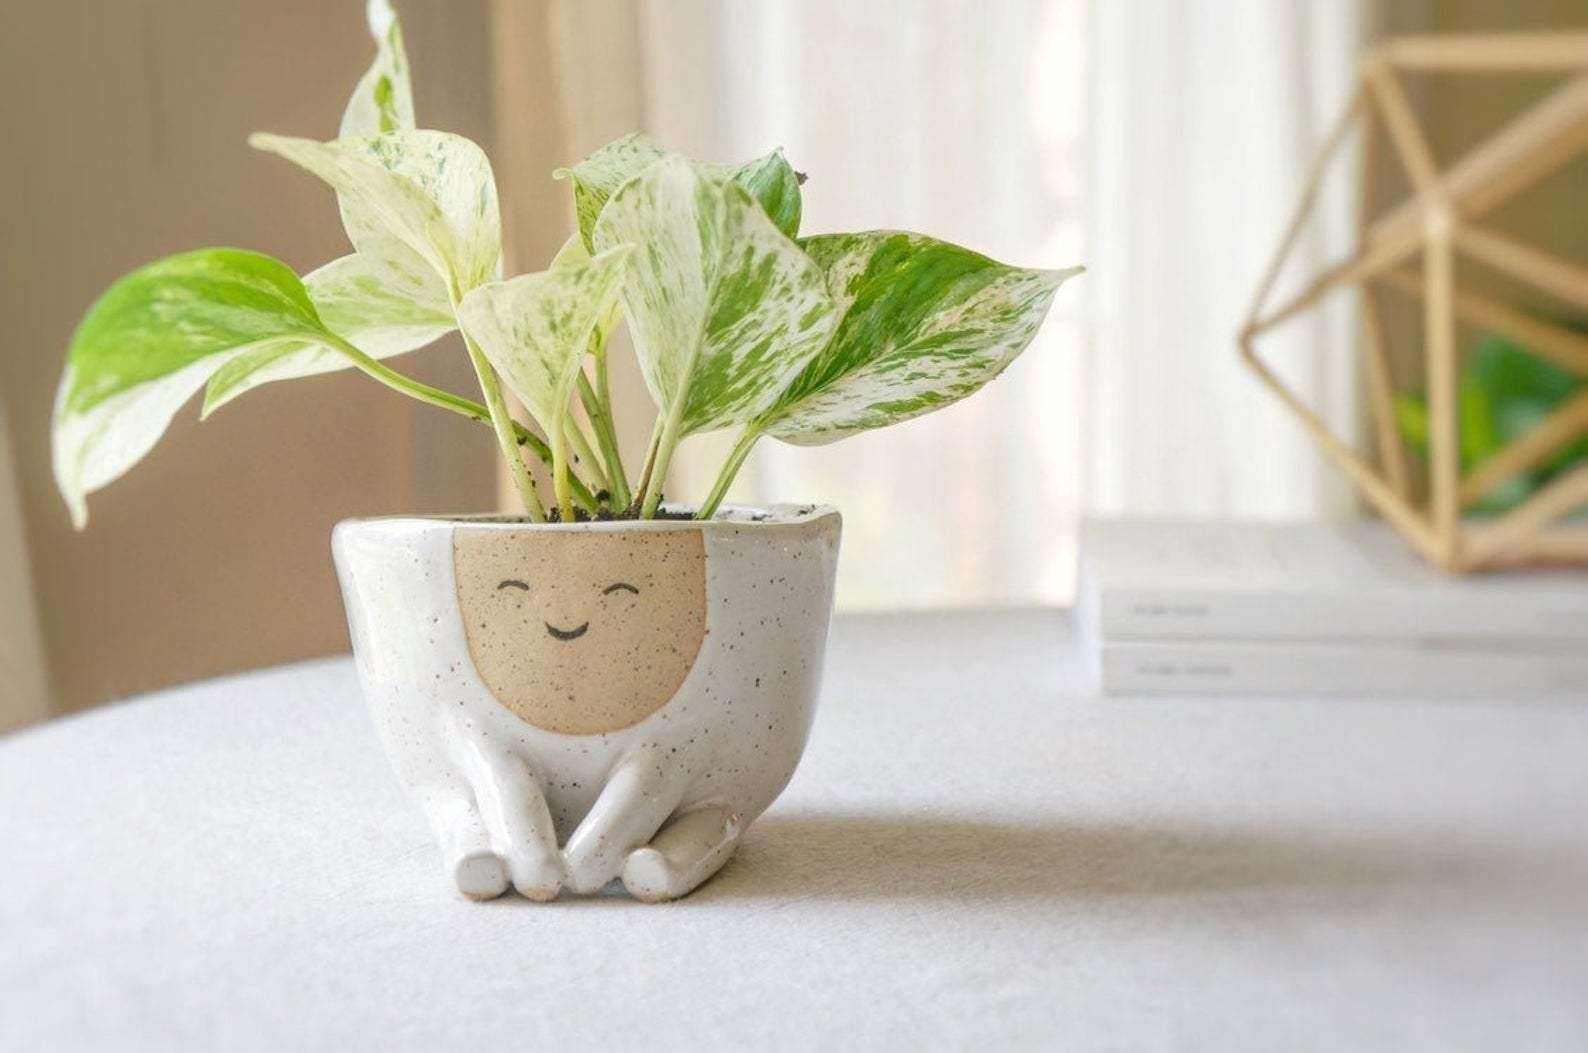 the ceramic pot holding a plant